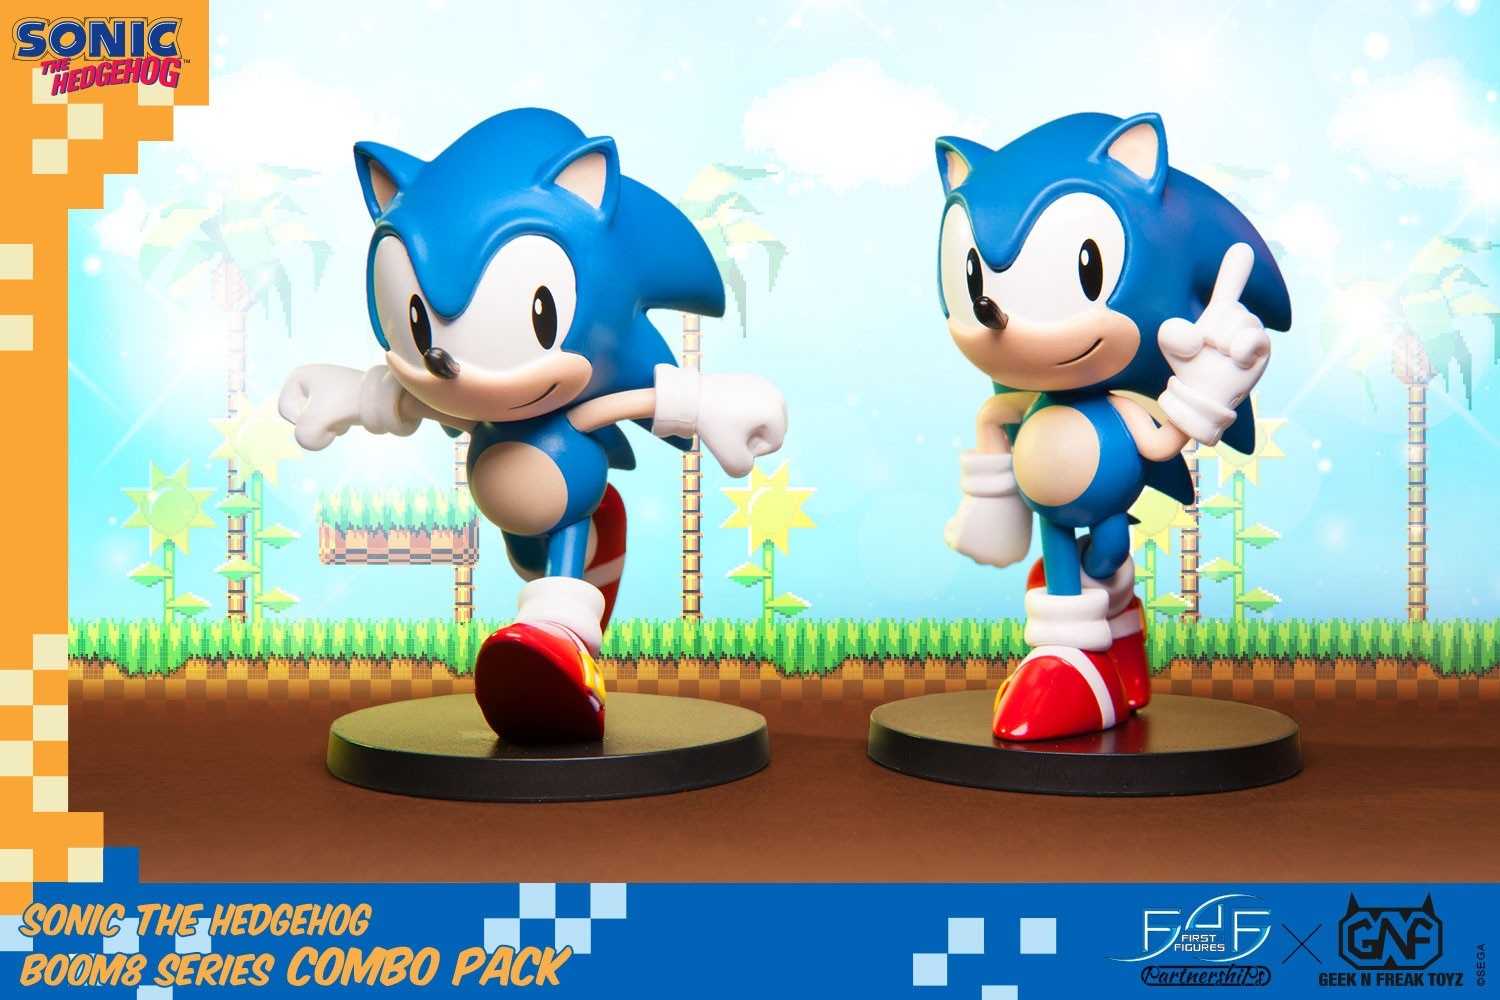 Sonic the Hedgehog Boom8 Series – Combo Pack 1